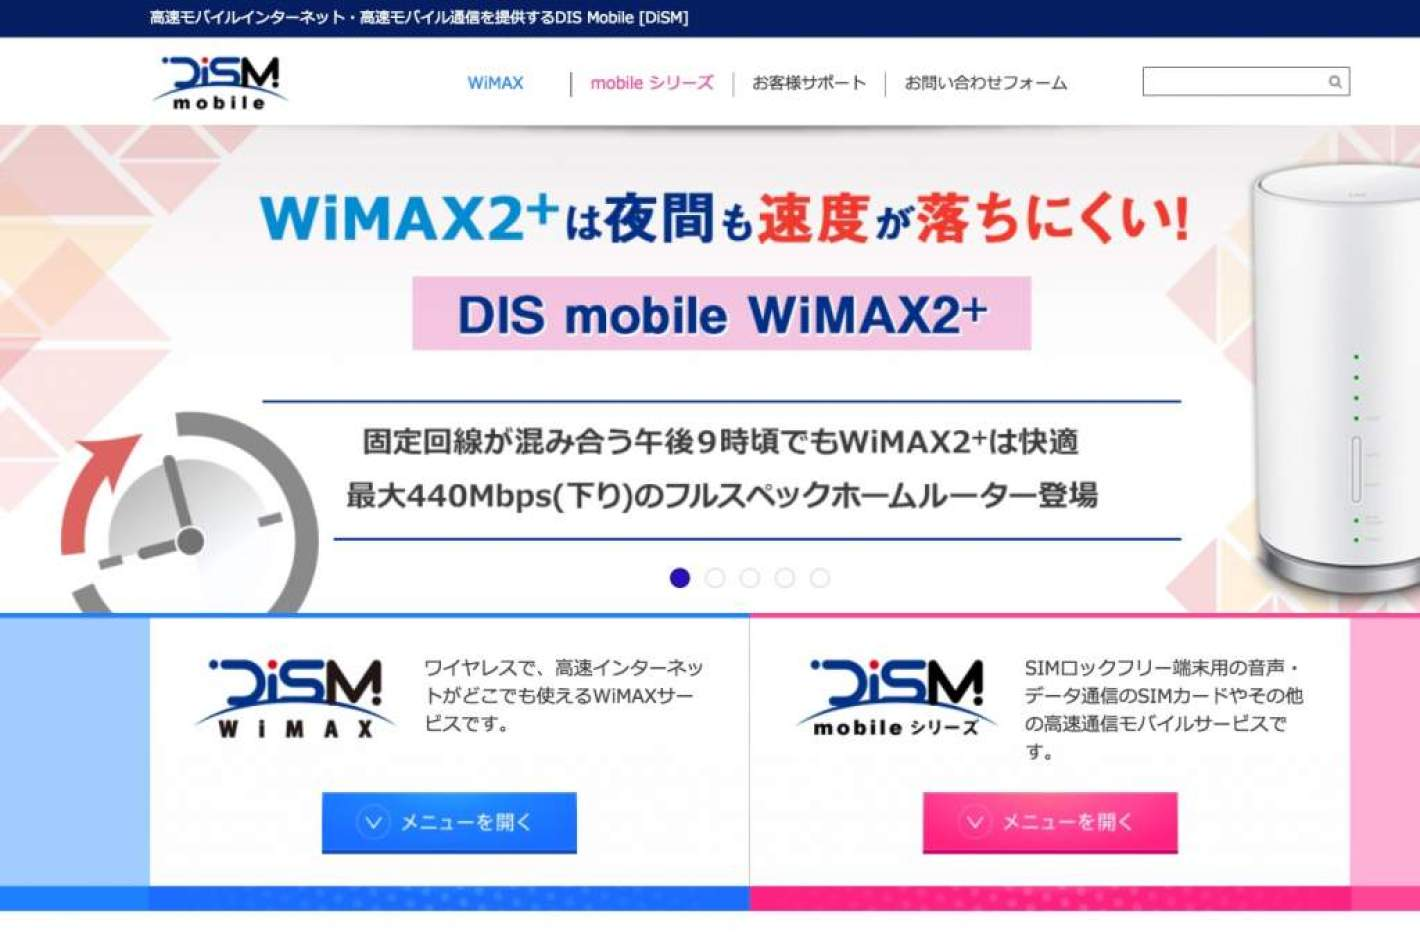 DIS mobile WiMAXの公式サイト